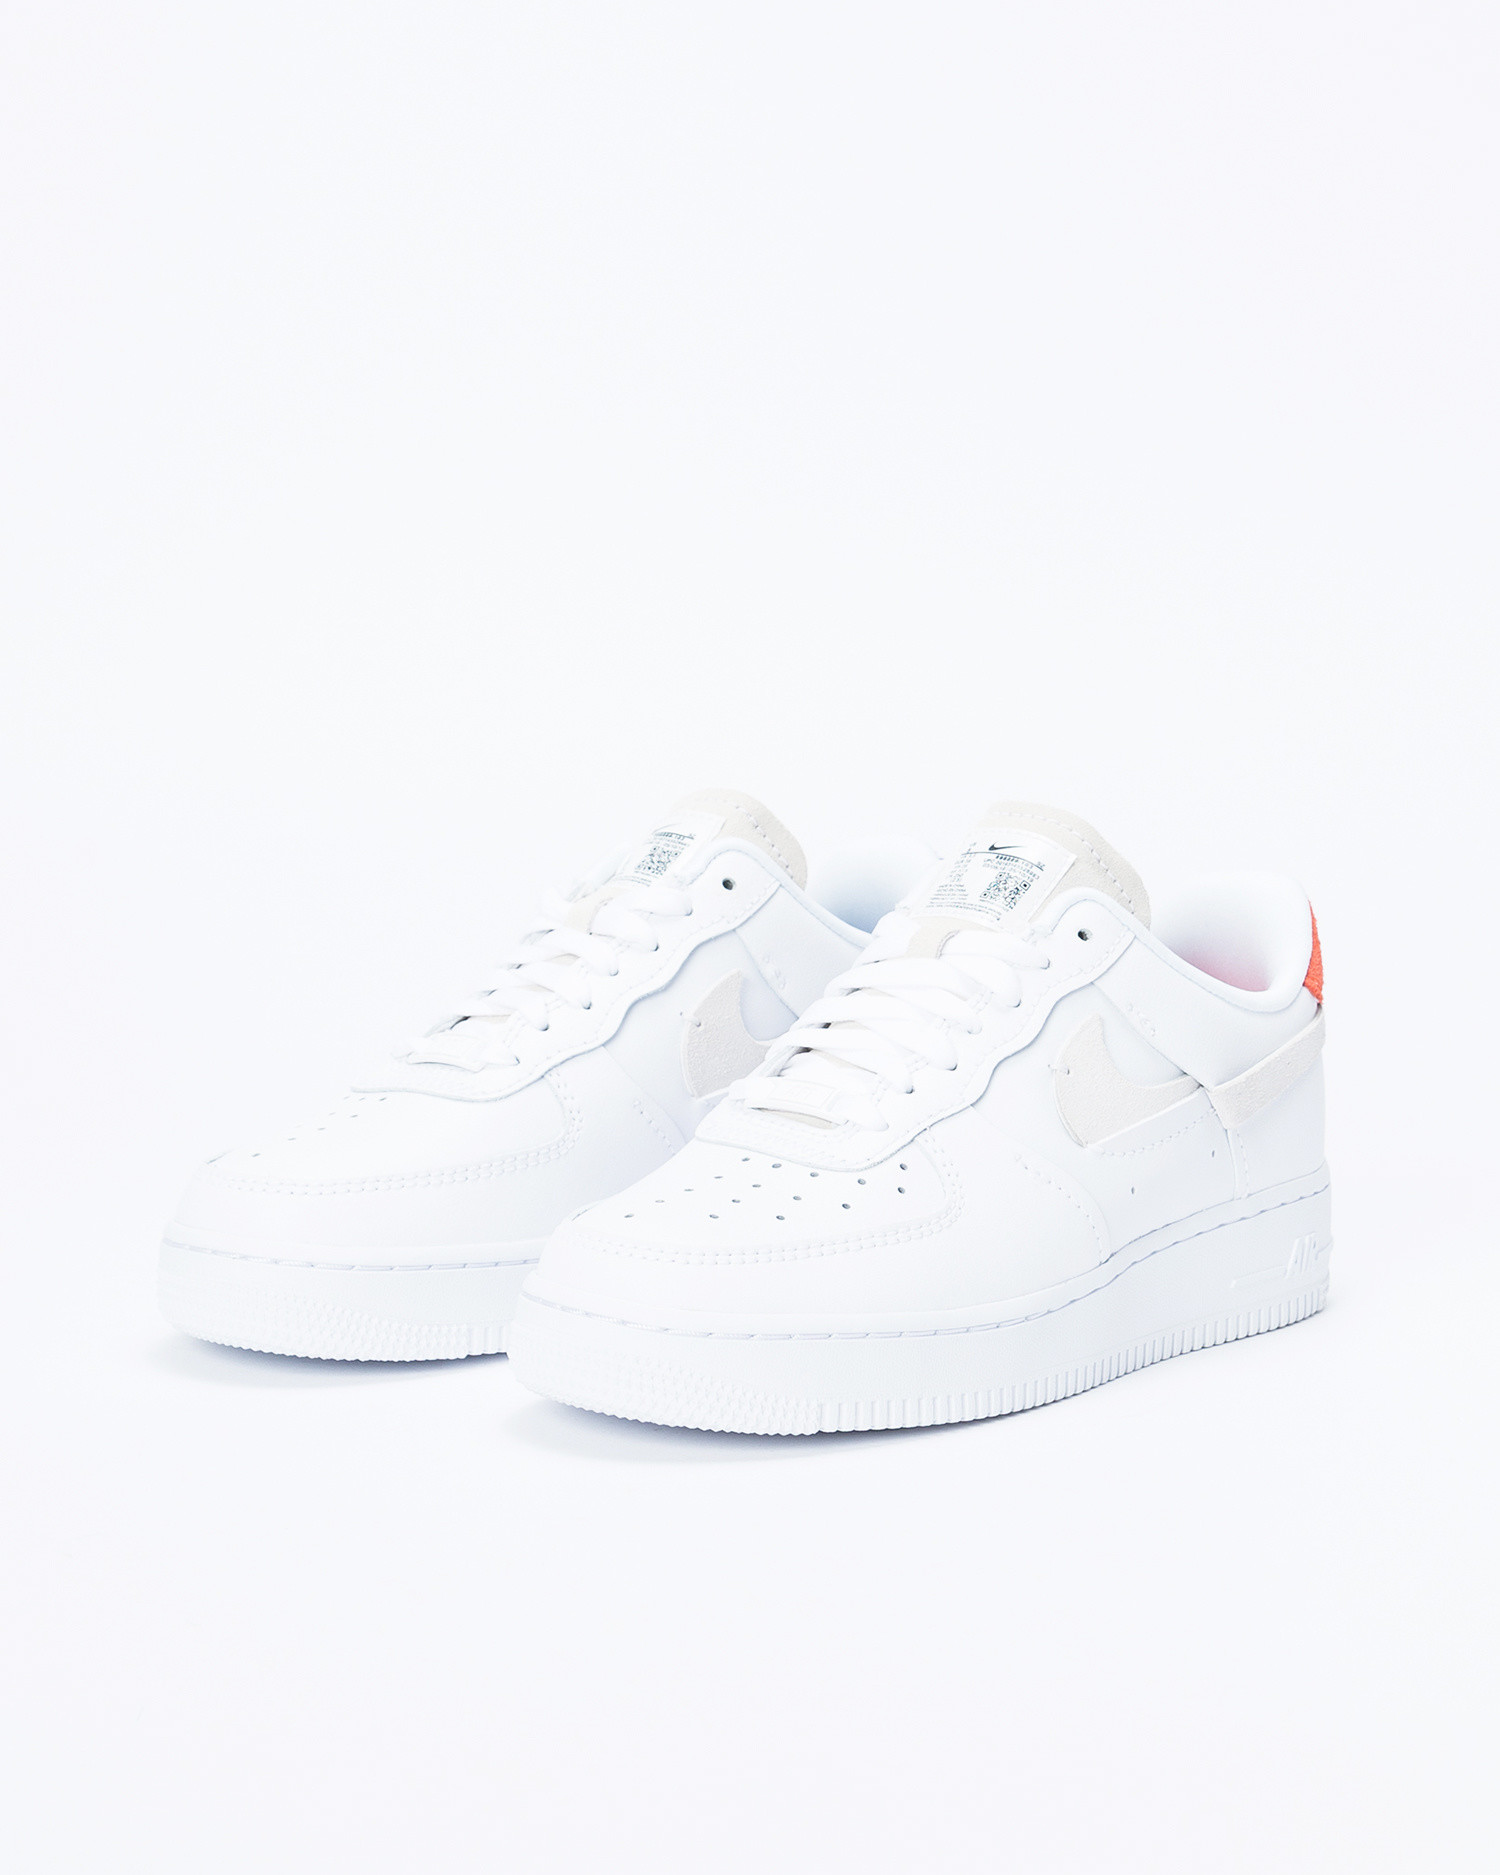 Nike wmns Air Force 1 '07 LX WhitePlatinum tintGame royal